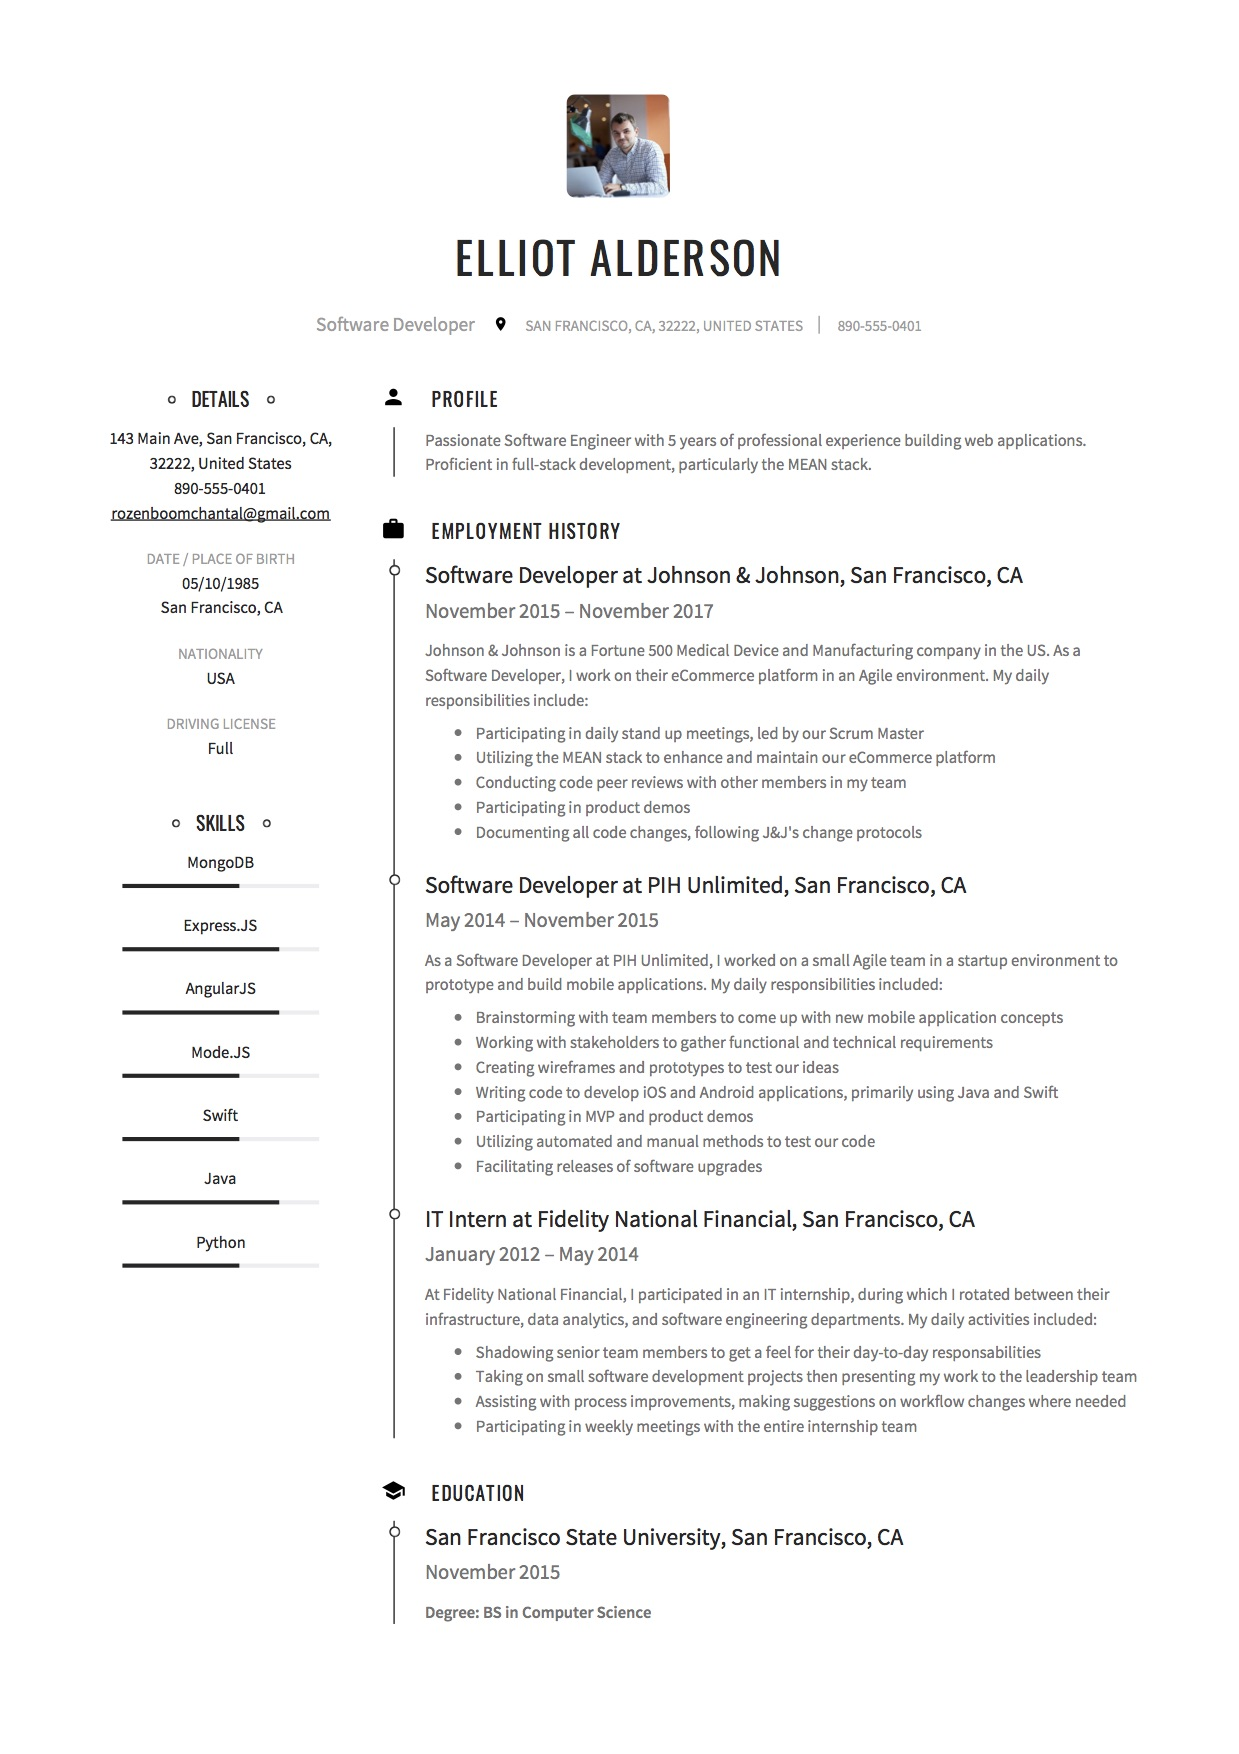 12 Software Developer Resume Sample(s) - 2018 (Free Downloads)